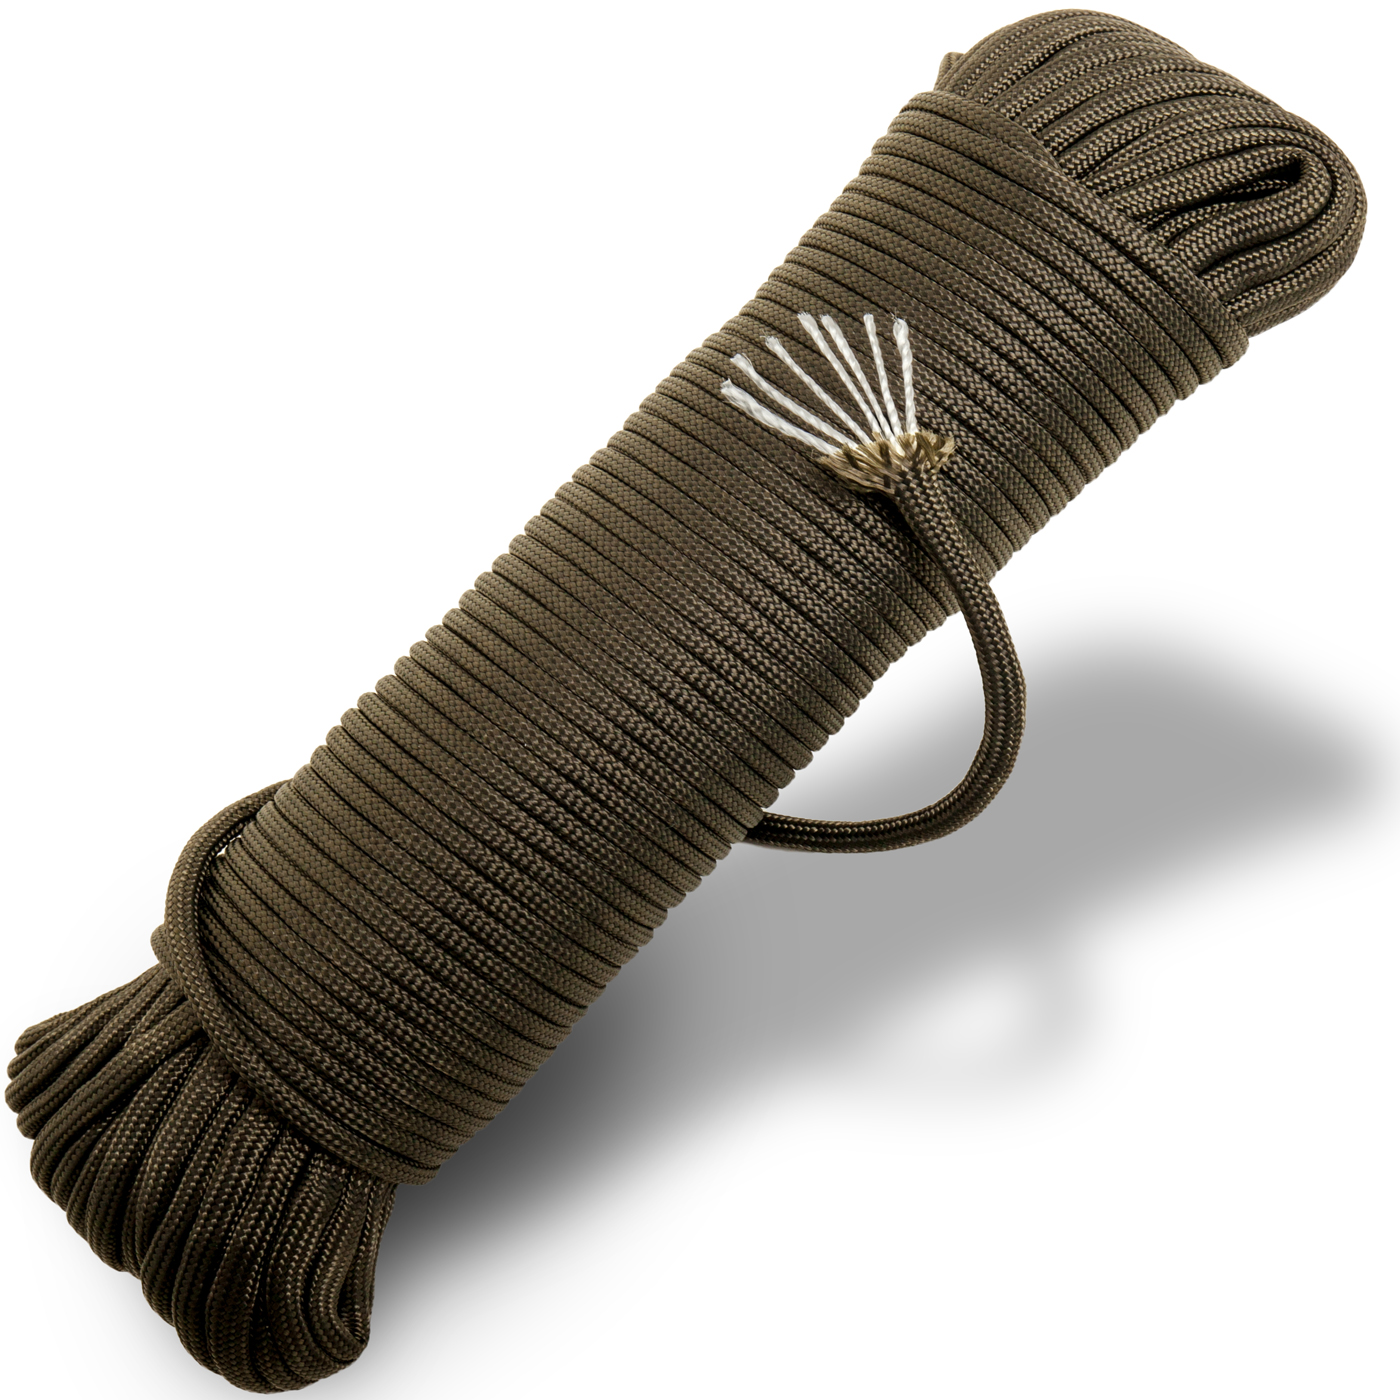 100 Ft. Type III 7 Strand 550 Lb Test Paracord Mil Spec Parachute Cord Outdoor Rope Tie Down - Olive Drab